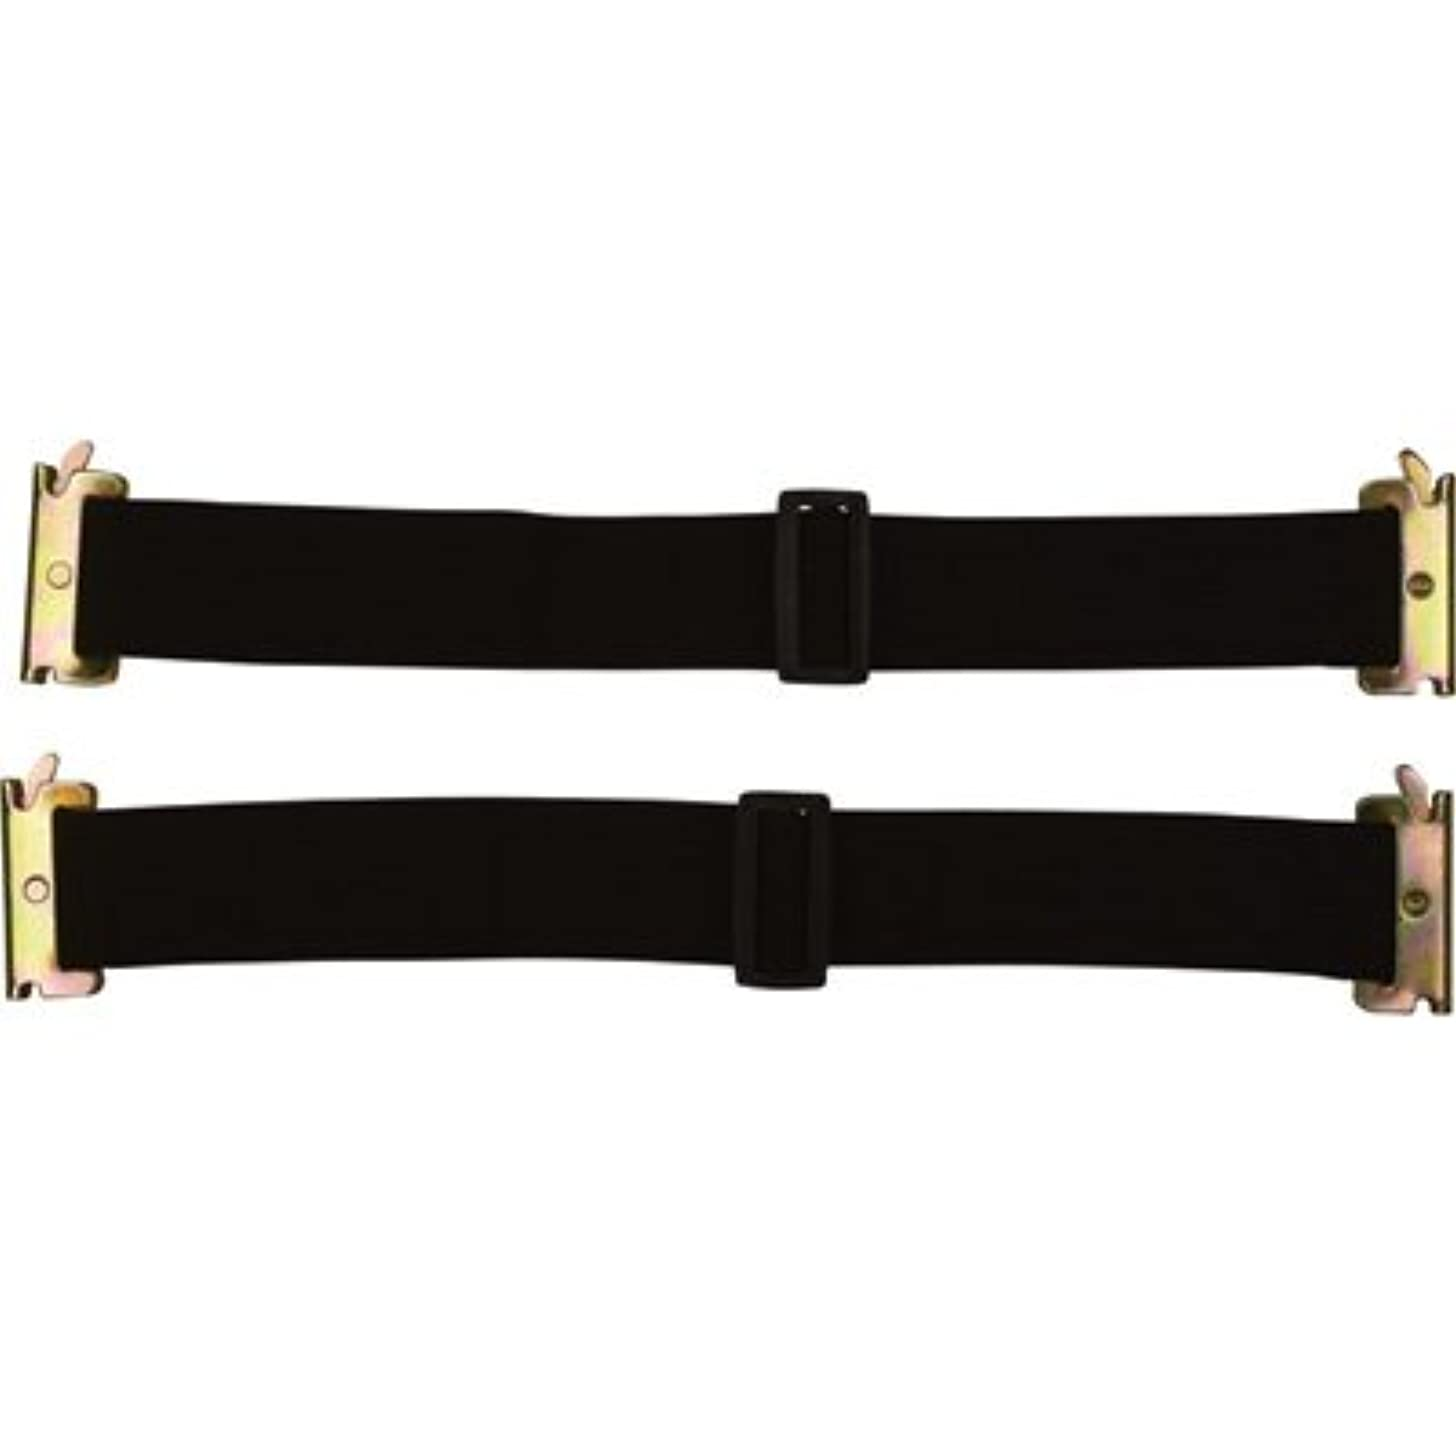 CargoSmart Adjustable Bungee Straps - 2-Pack, 22in.-32in.L, For E-Track and X-Track